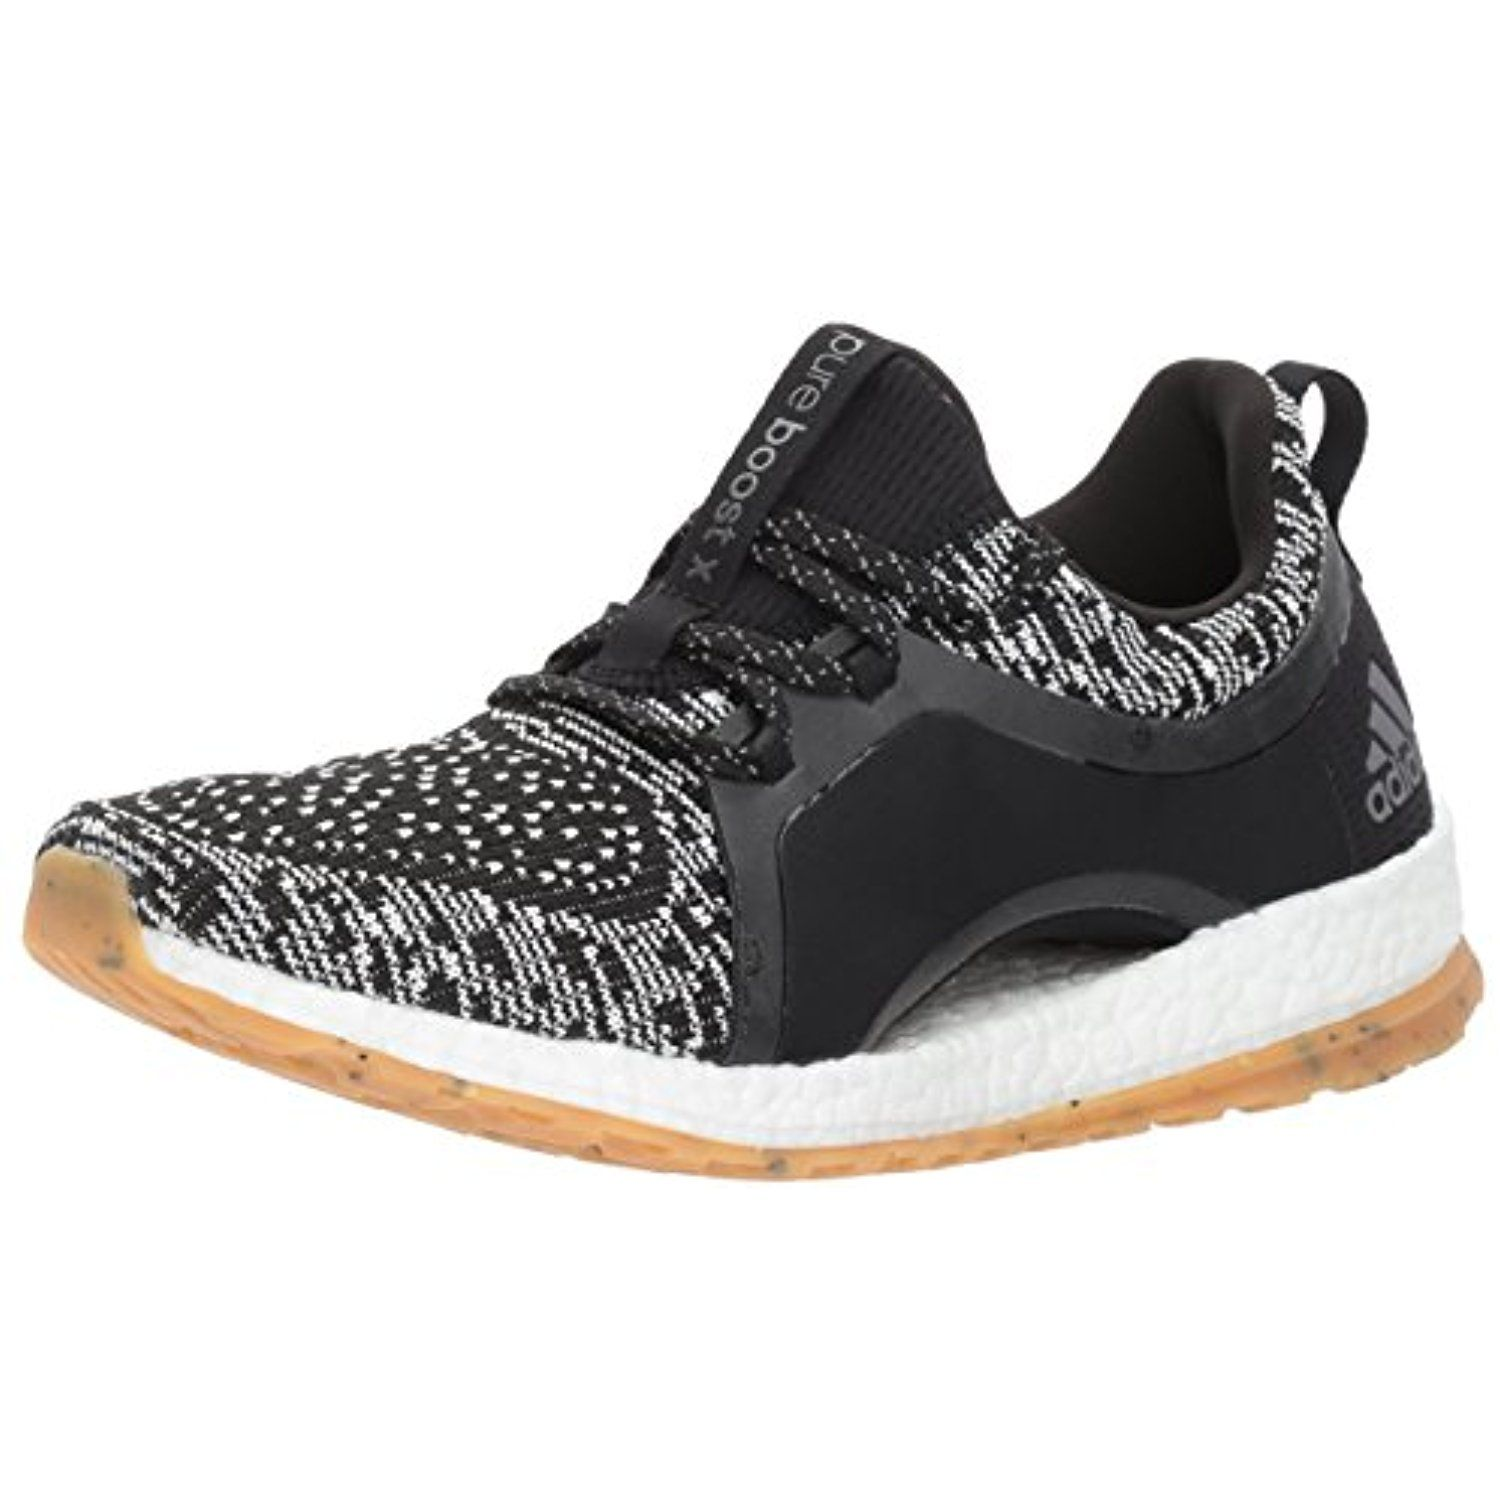 Women S Pureboost X Atr Running Shoe Read More At The Image Link This Is An Affiliate Link Shoe Adidas Pure Boost Womens Running Shoes Adidas Shoes Women